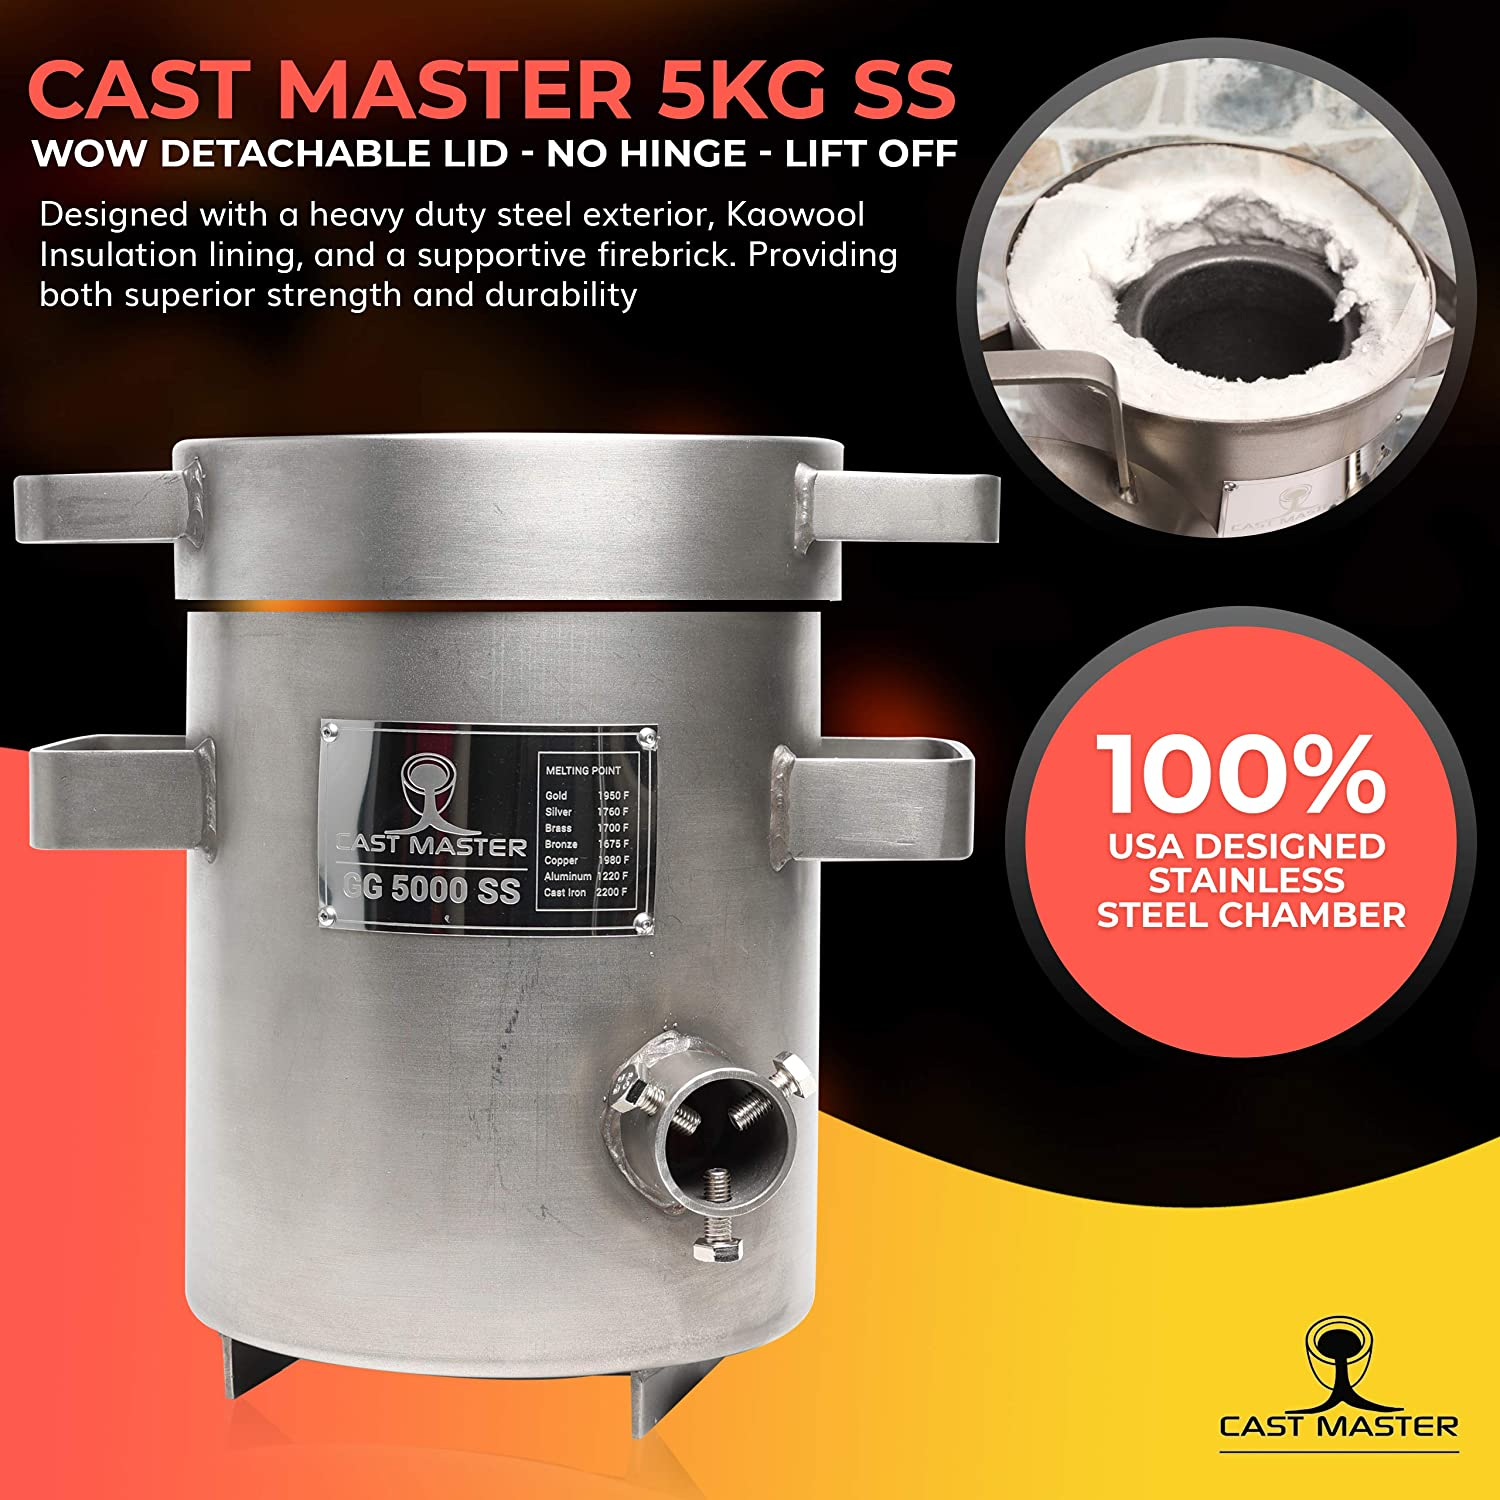 Cast Masters Mini Propane Furnace Crucible and Tongs Kiln Smelting Gold Silver Copper Scrap Metal Recycle